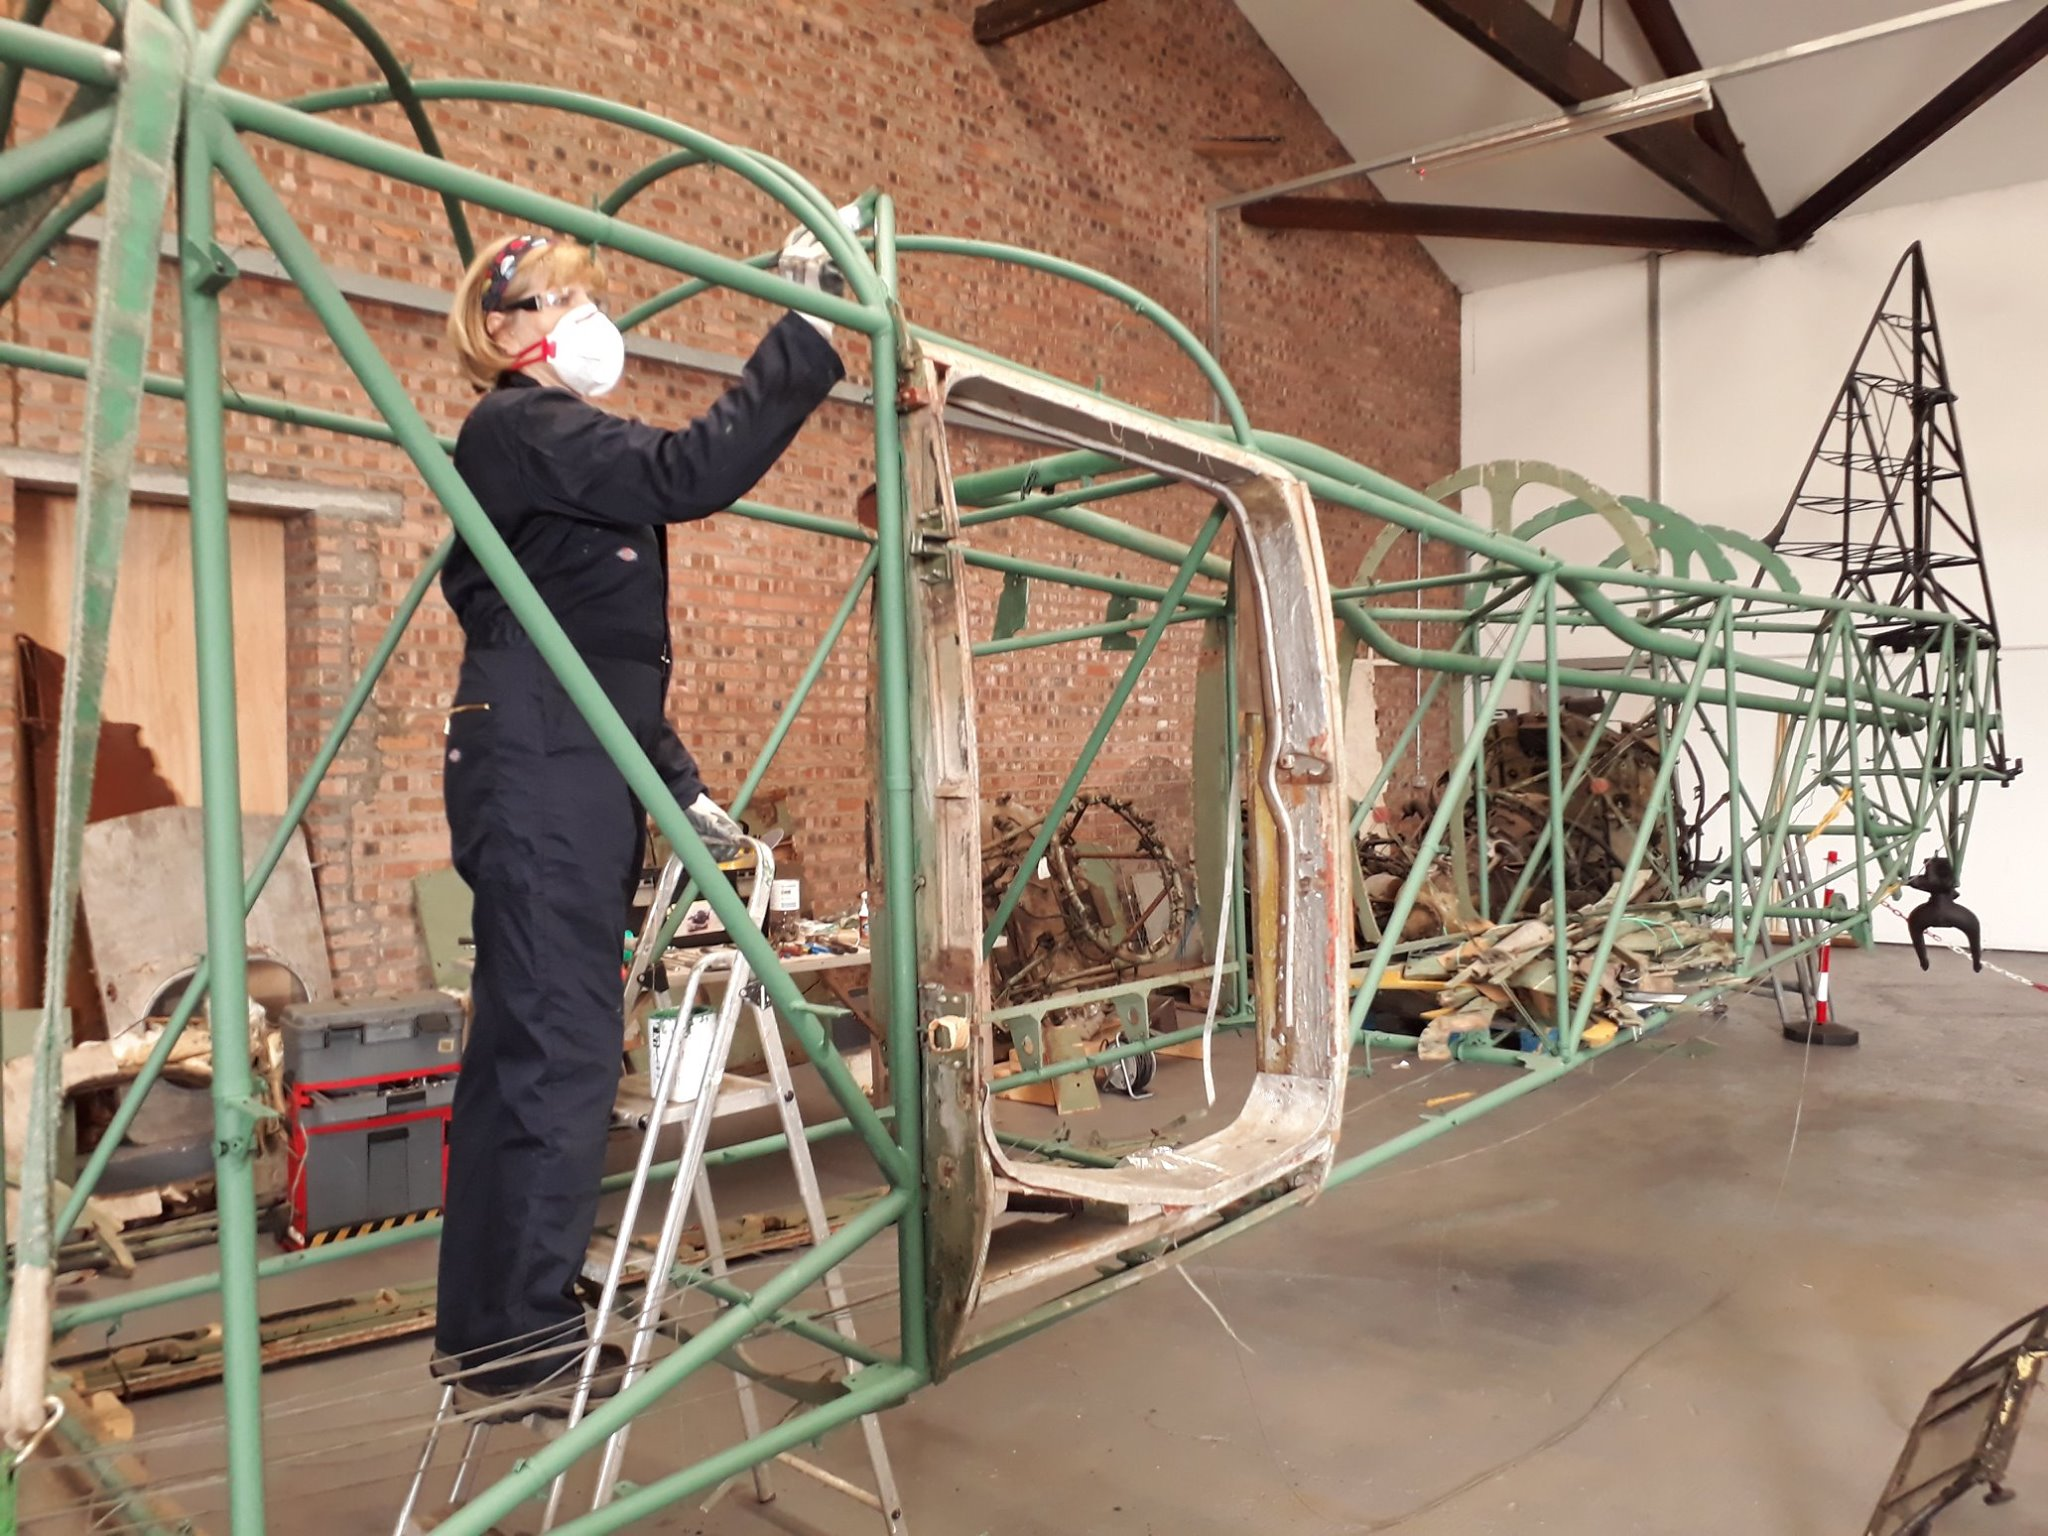 Work taking place on the Avro Anson.